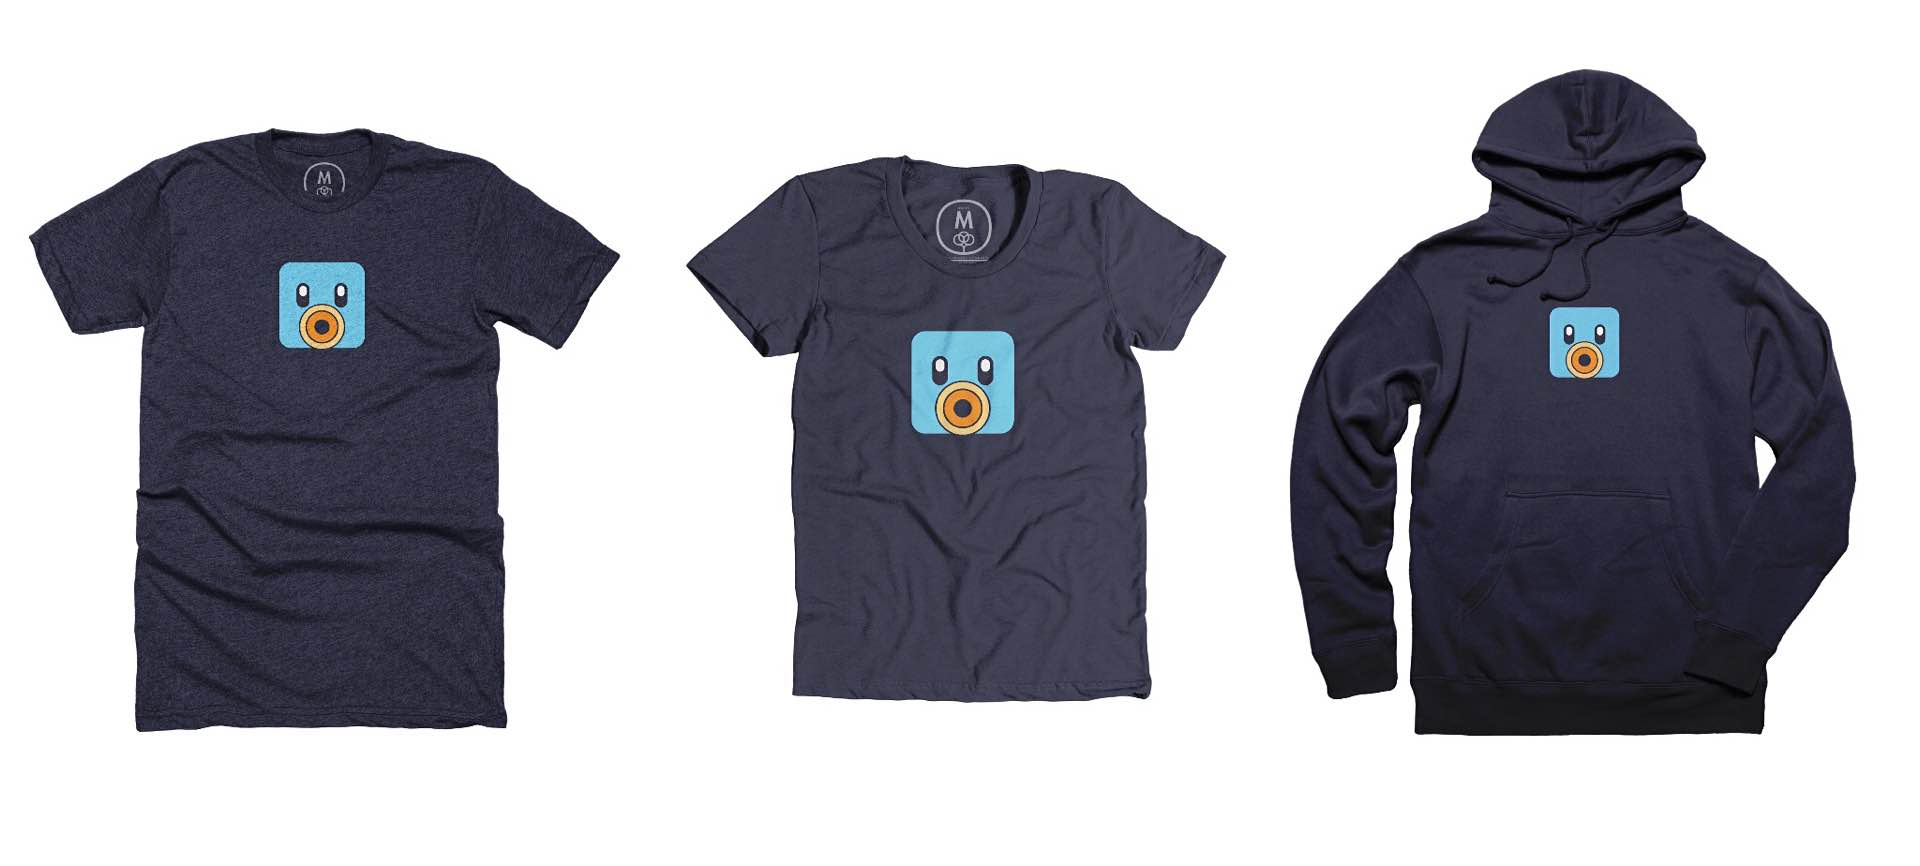 tweetbot-t-shirts-and-hoodie